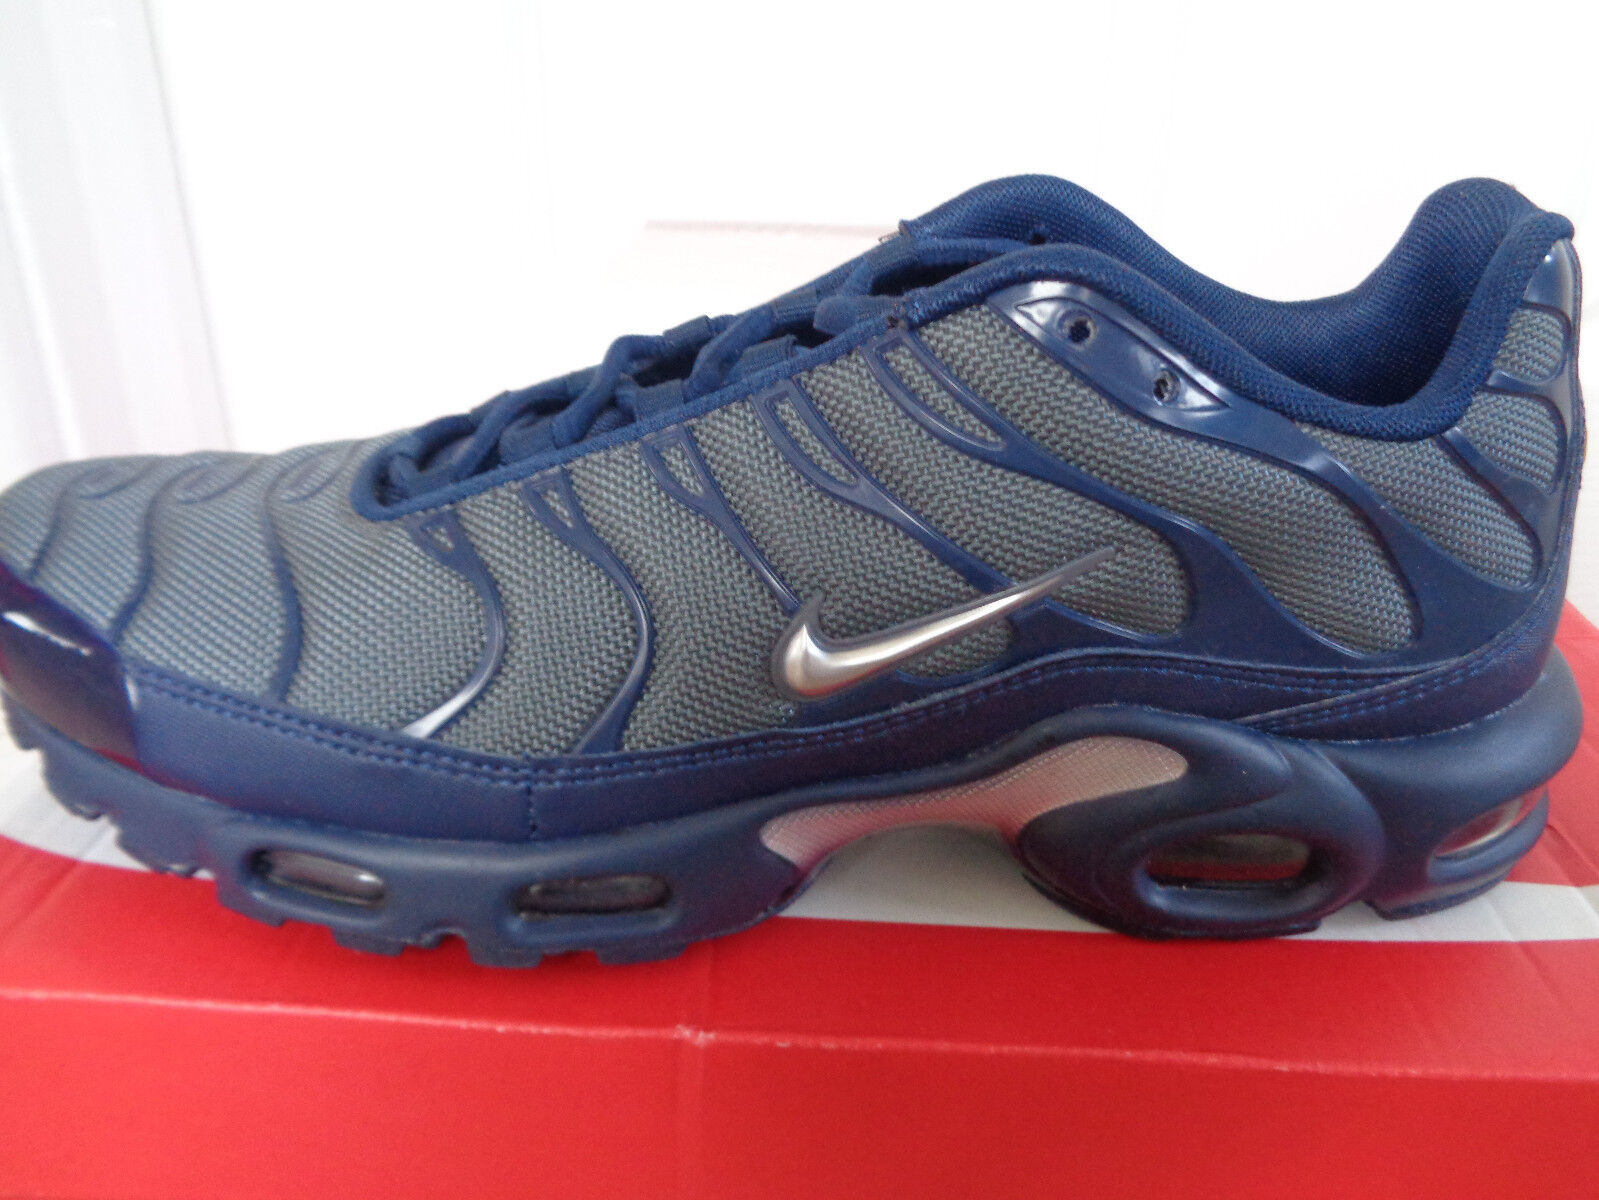 Nike Air max plus trainers sneakers shoes 852630 012 eu 42.5 us 9 NEW+BOX